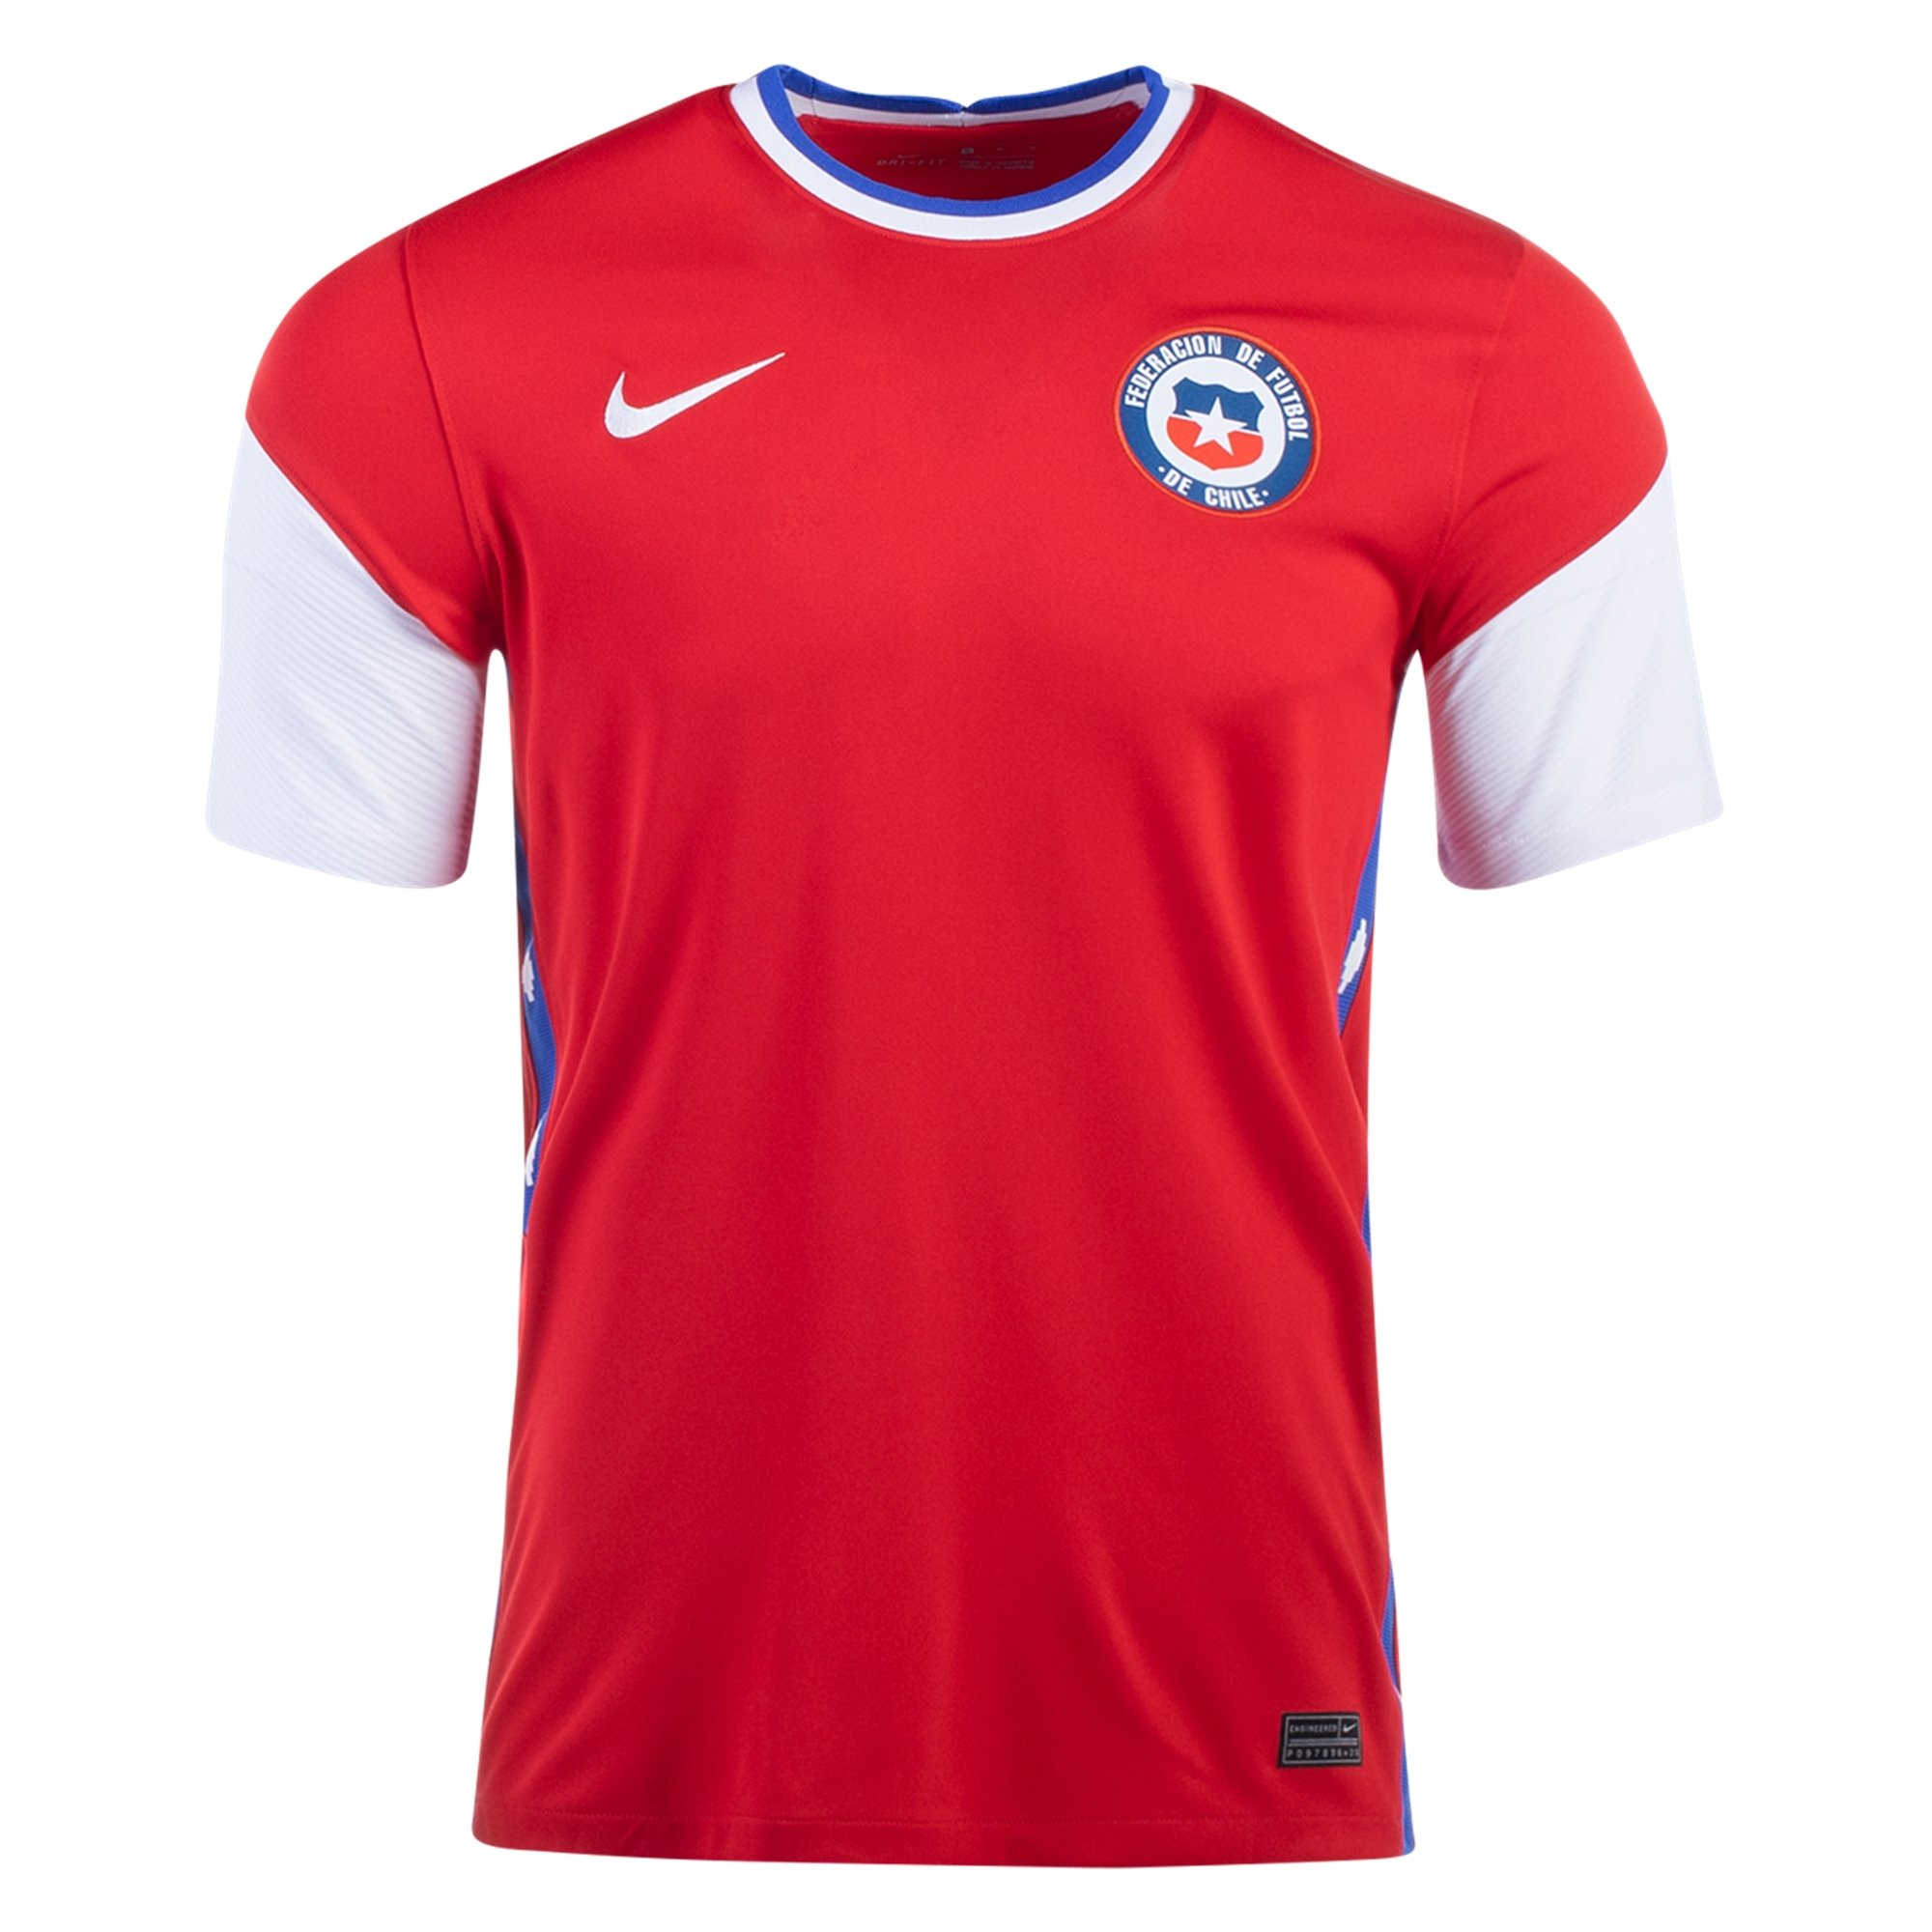 Nike Replica Chile Home Jersey 2020